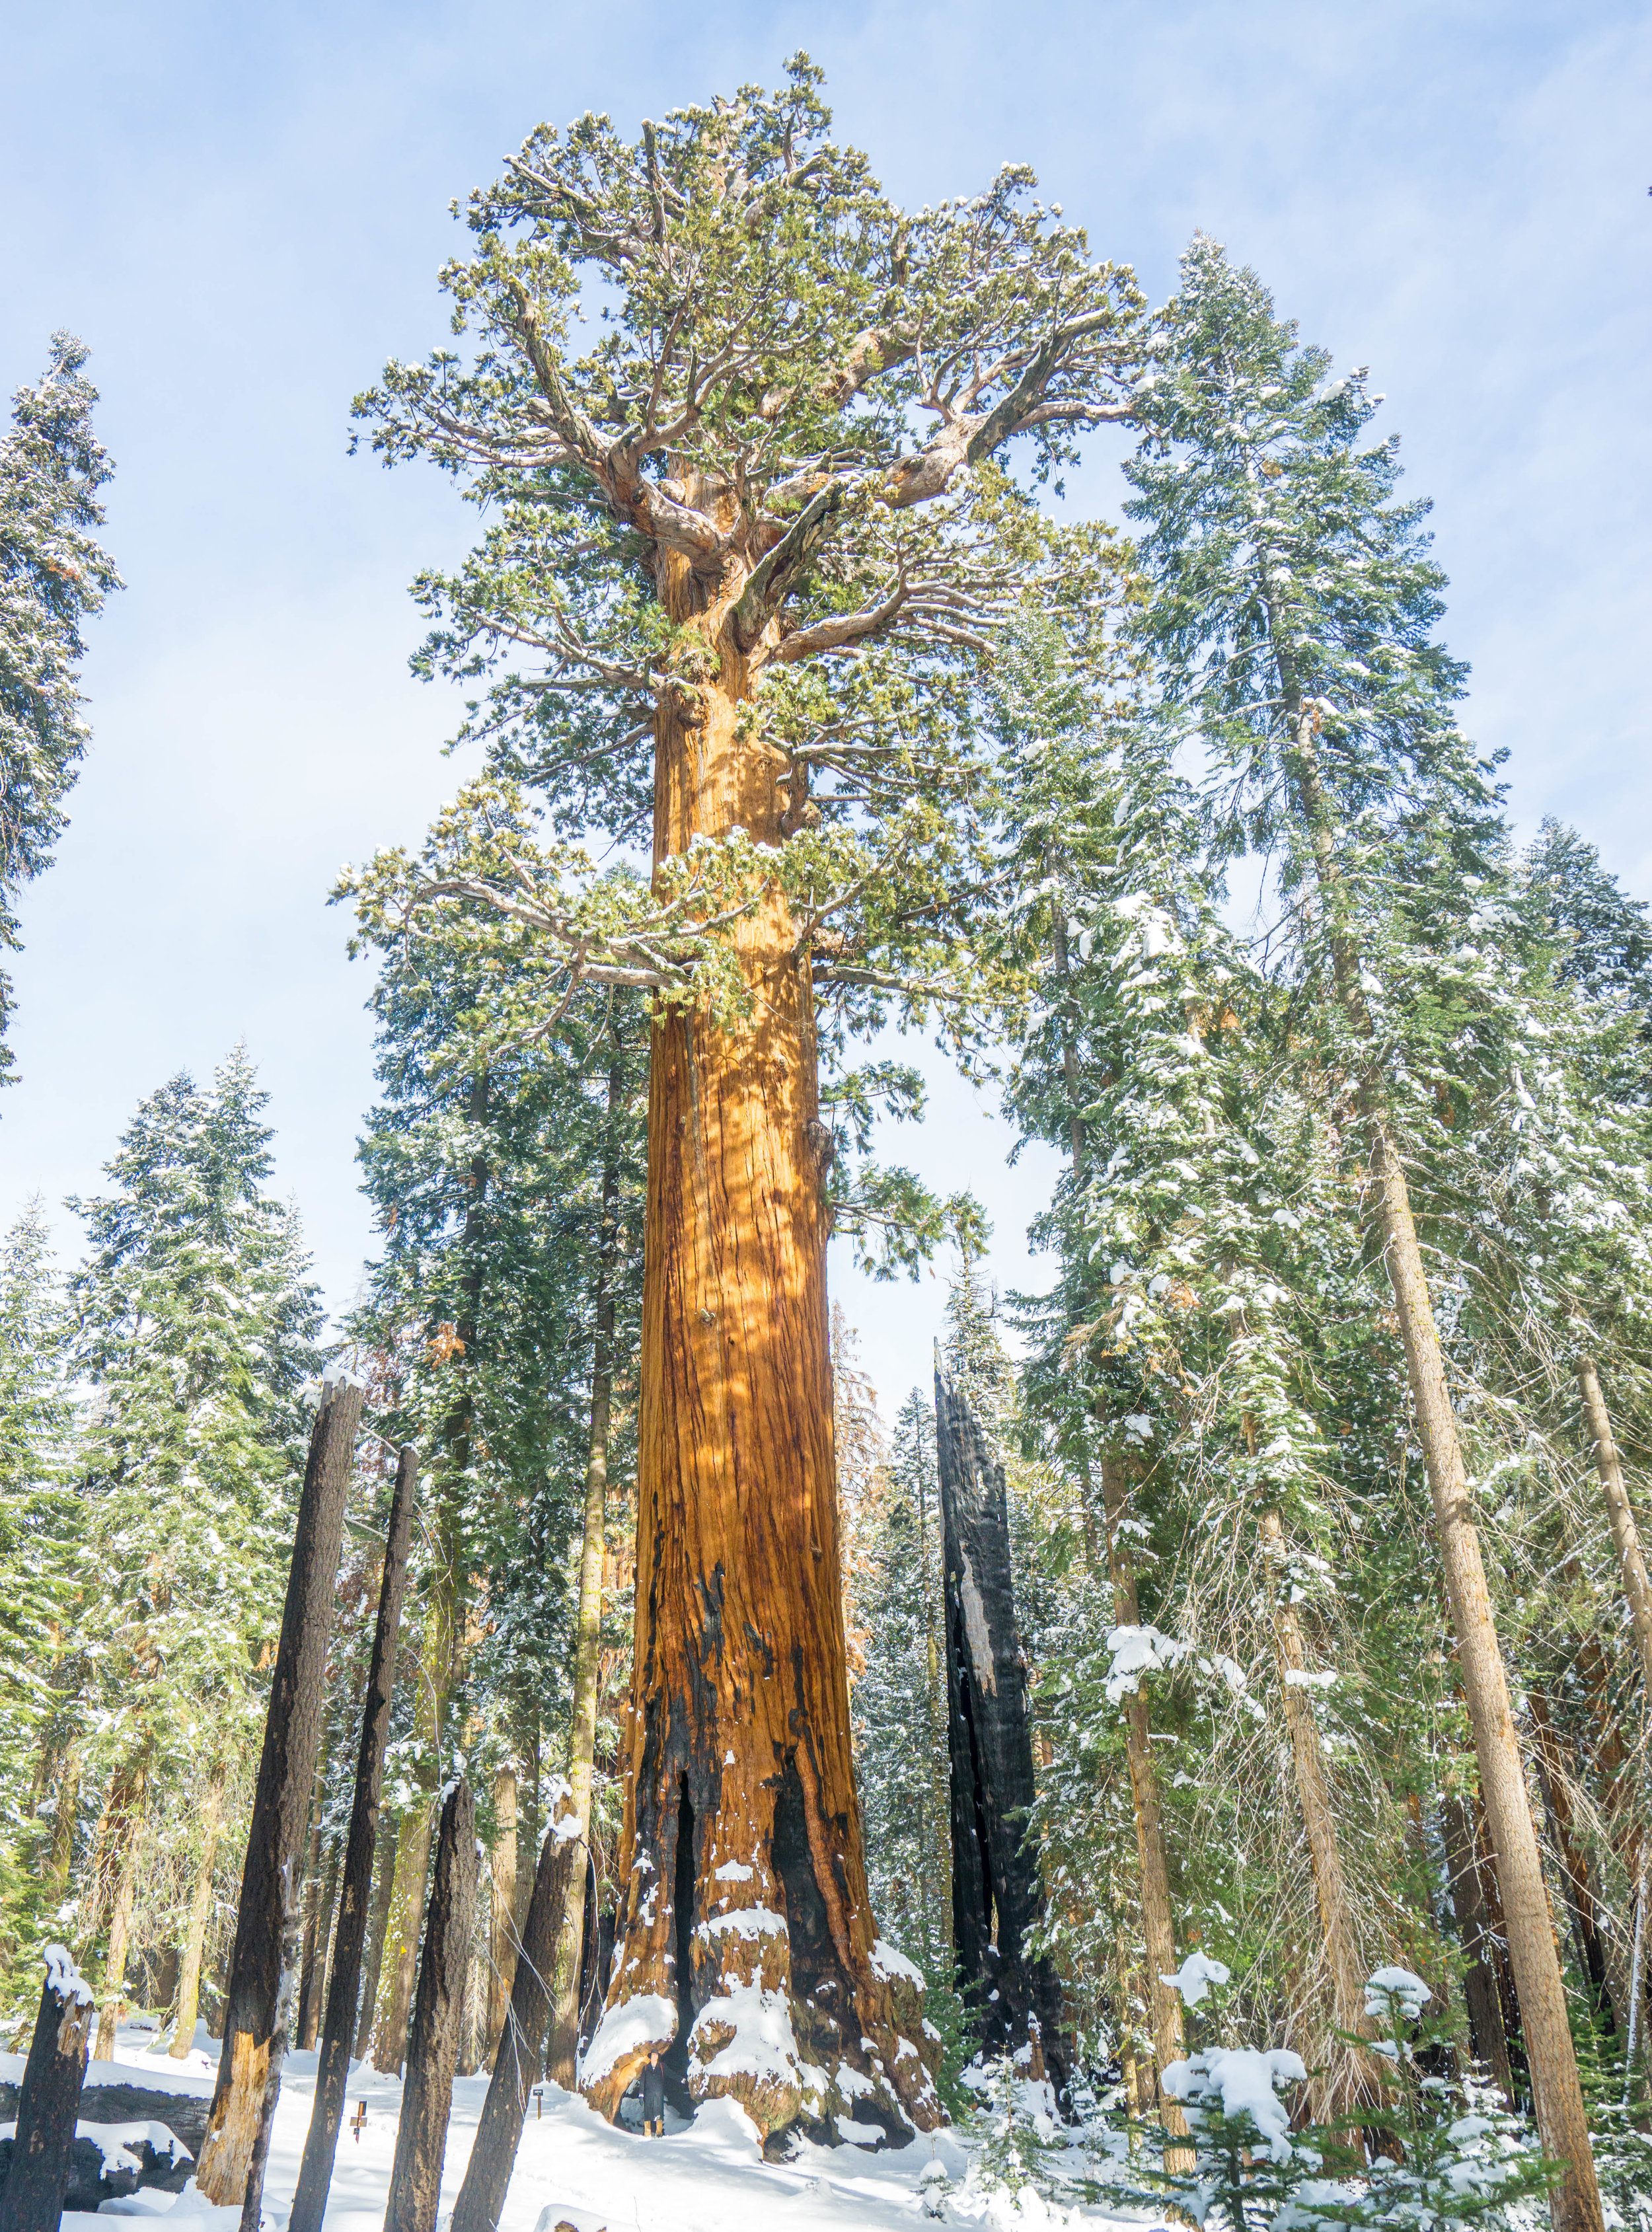 Alas we reach the Lincoln Tree, 4th largest in the entire world. Its so massive, even some of its branches alone are bigger than most normal sized trees.